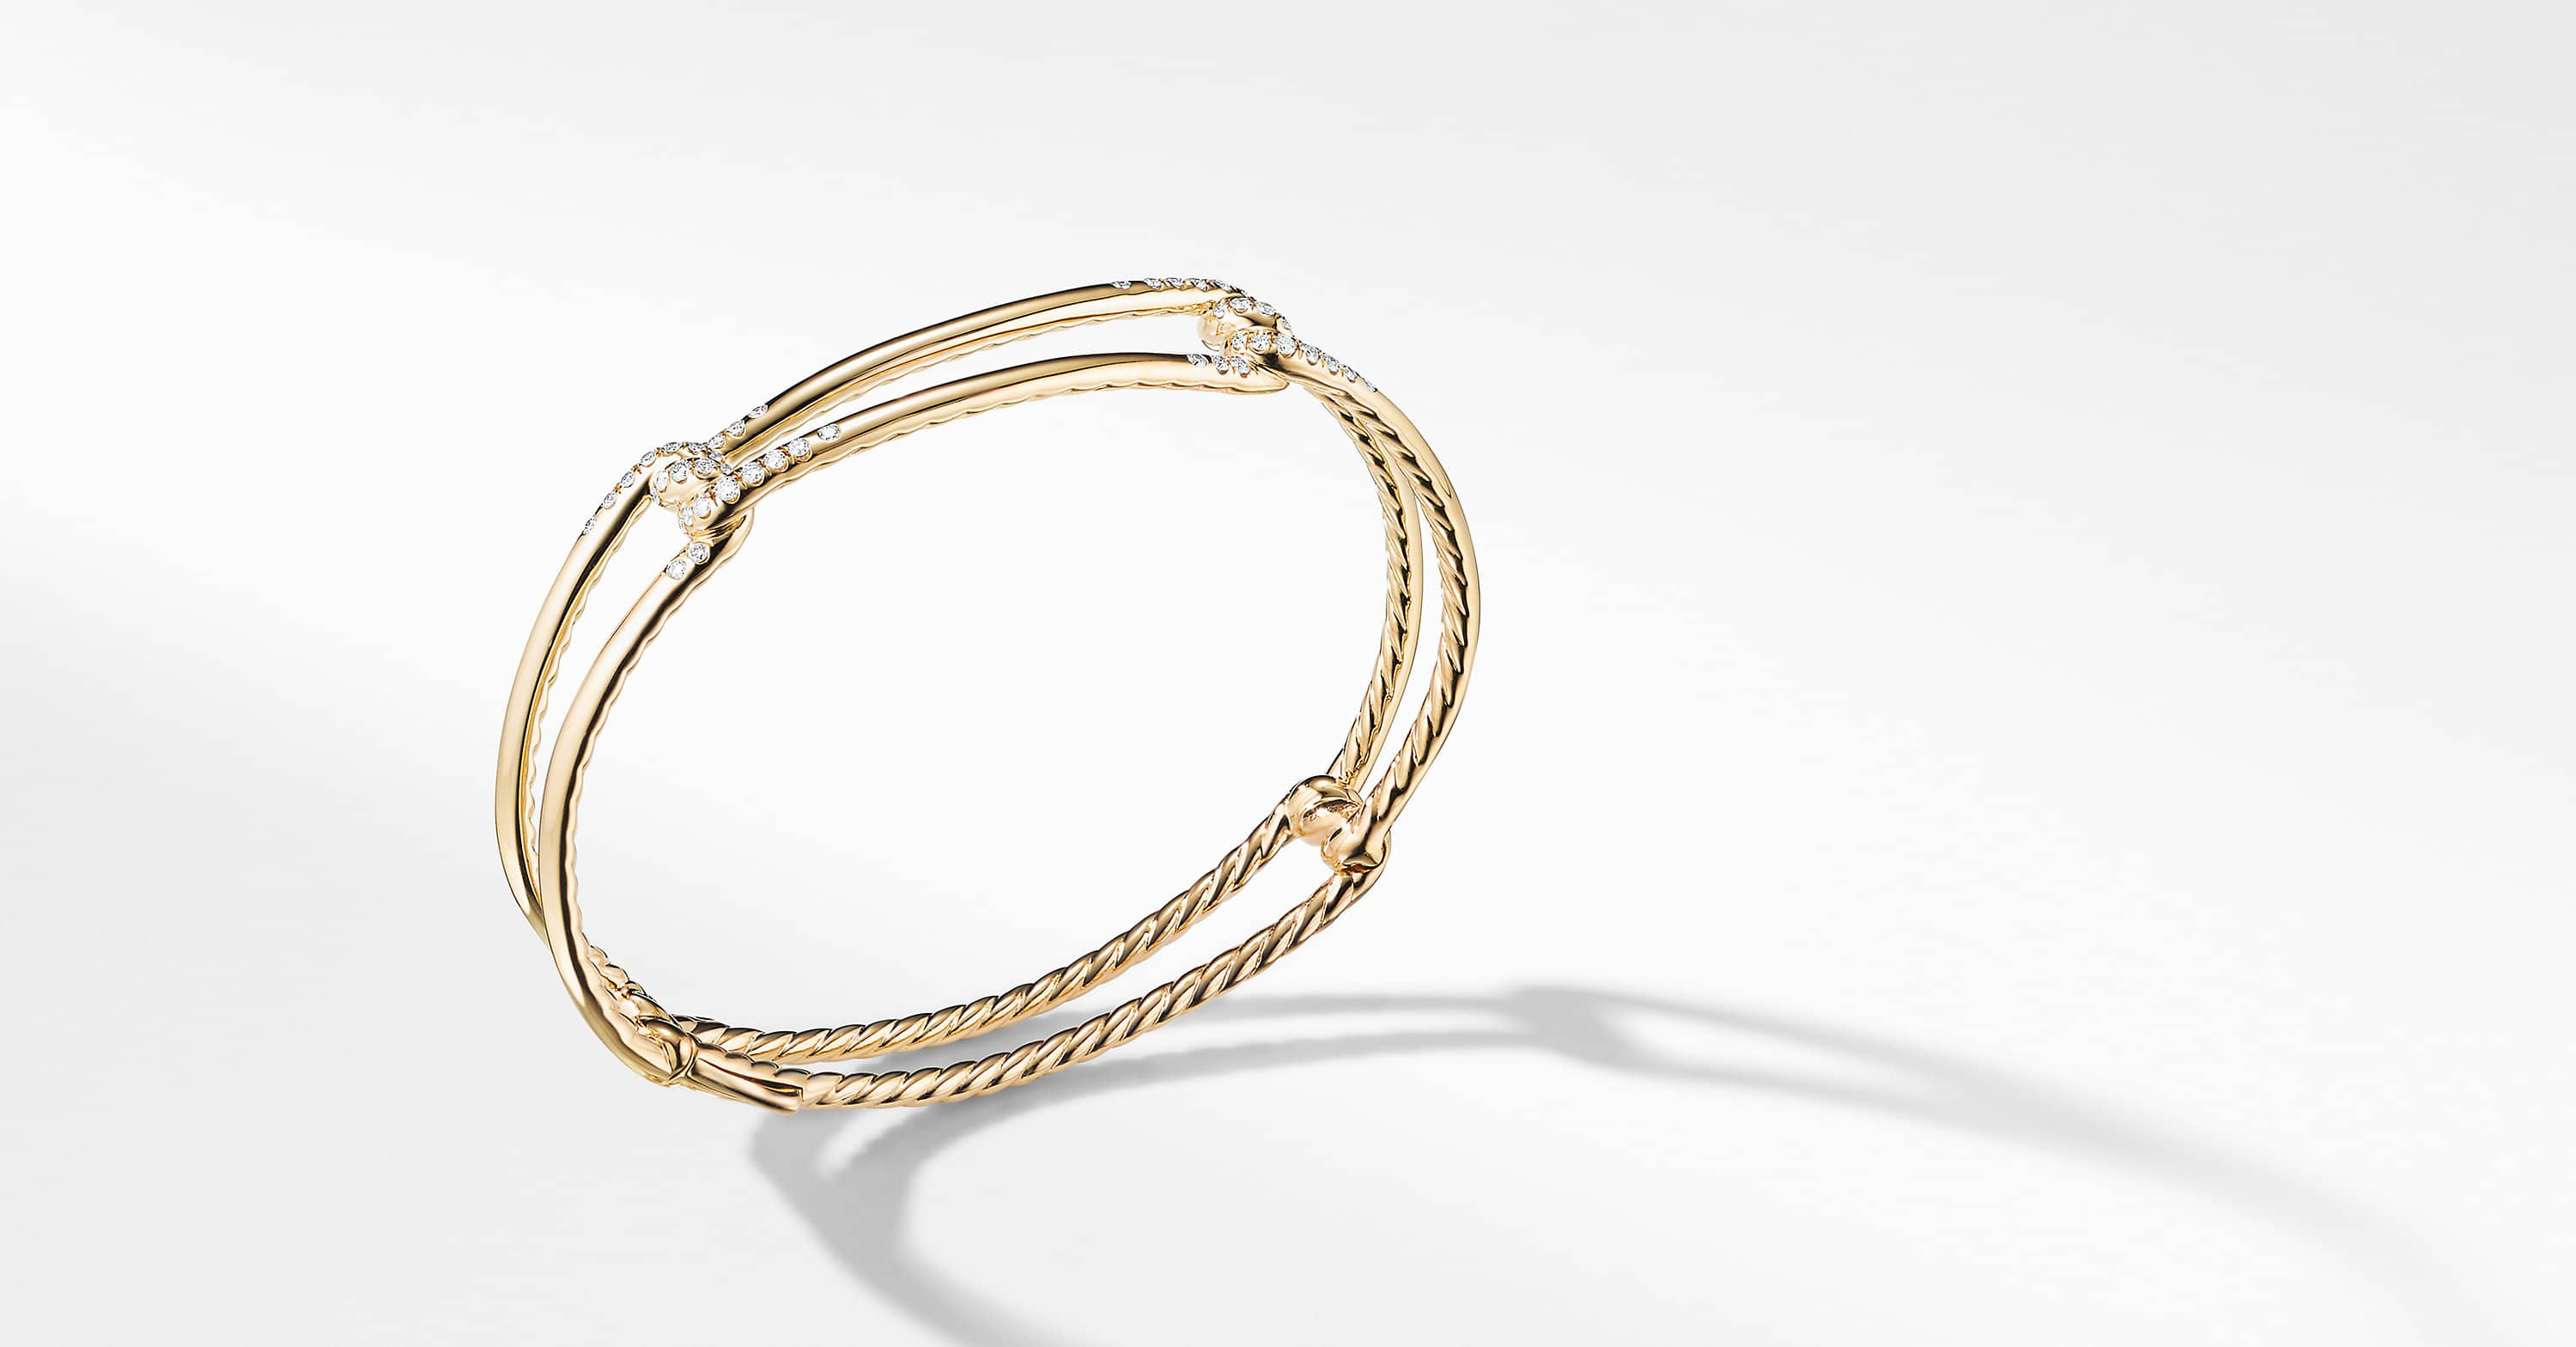 Continuance Bracelet with Diamonds in 18K Gold